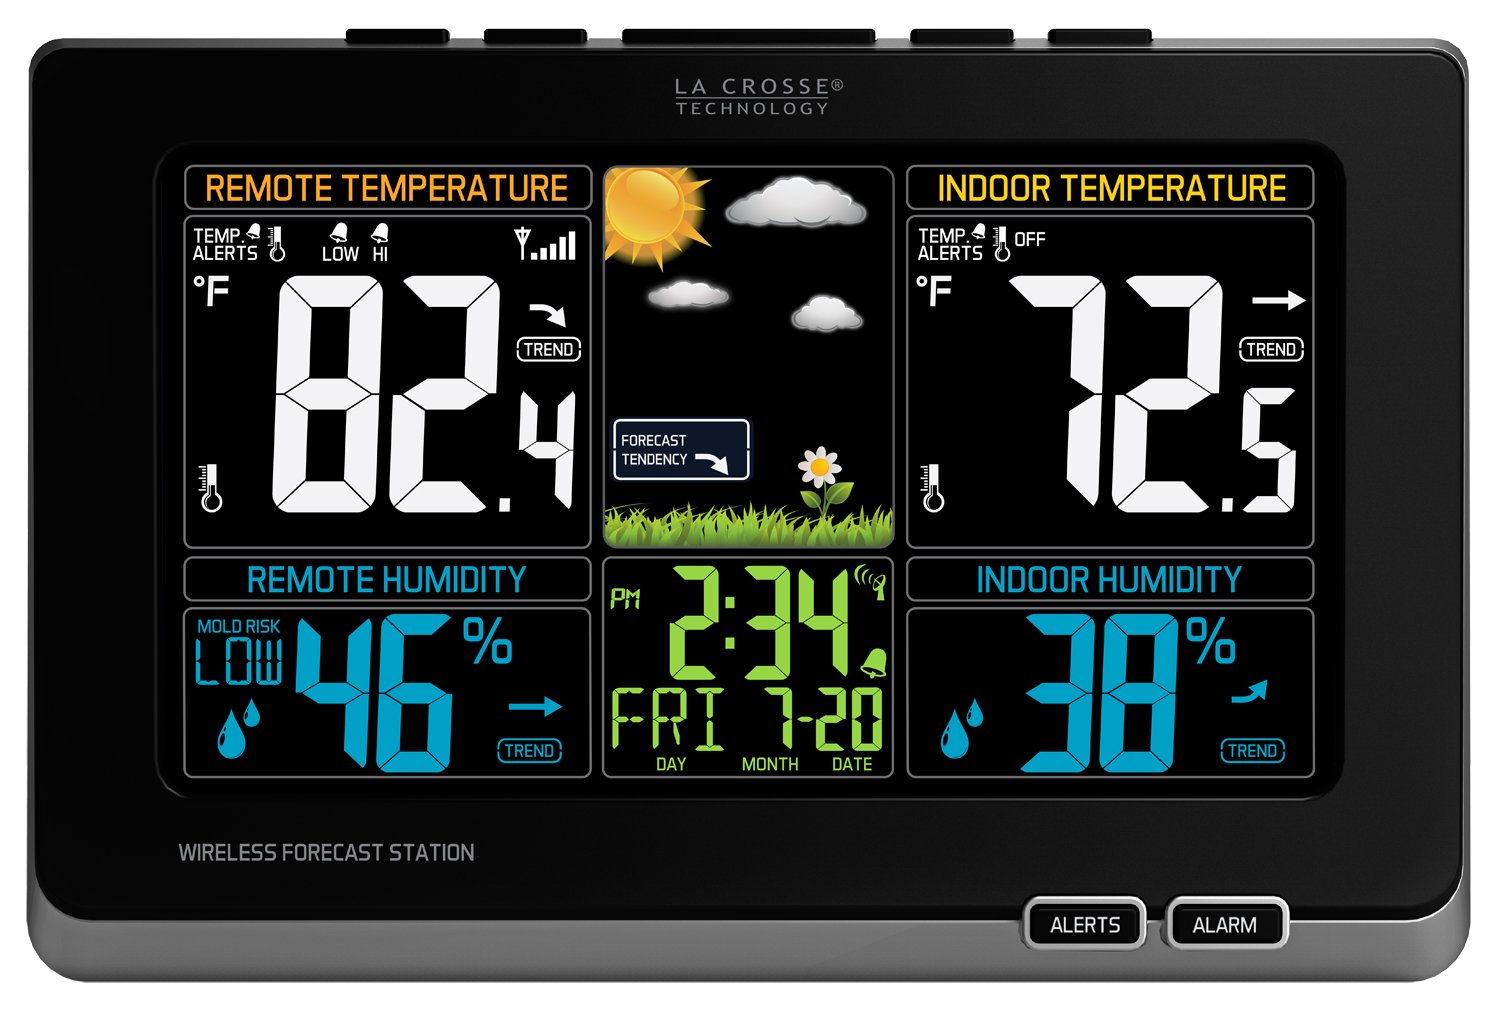 Click here to buy Lacrosse Technology 308-1414MB La Crosse Technology 308-1414mb Wireless Weather Station With Color Lcd by LaCrosse Technology.